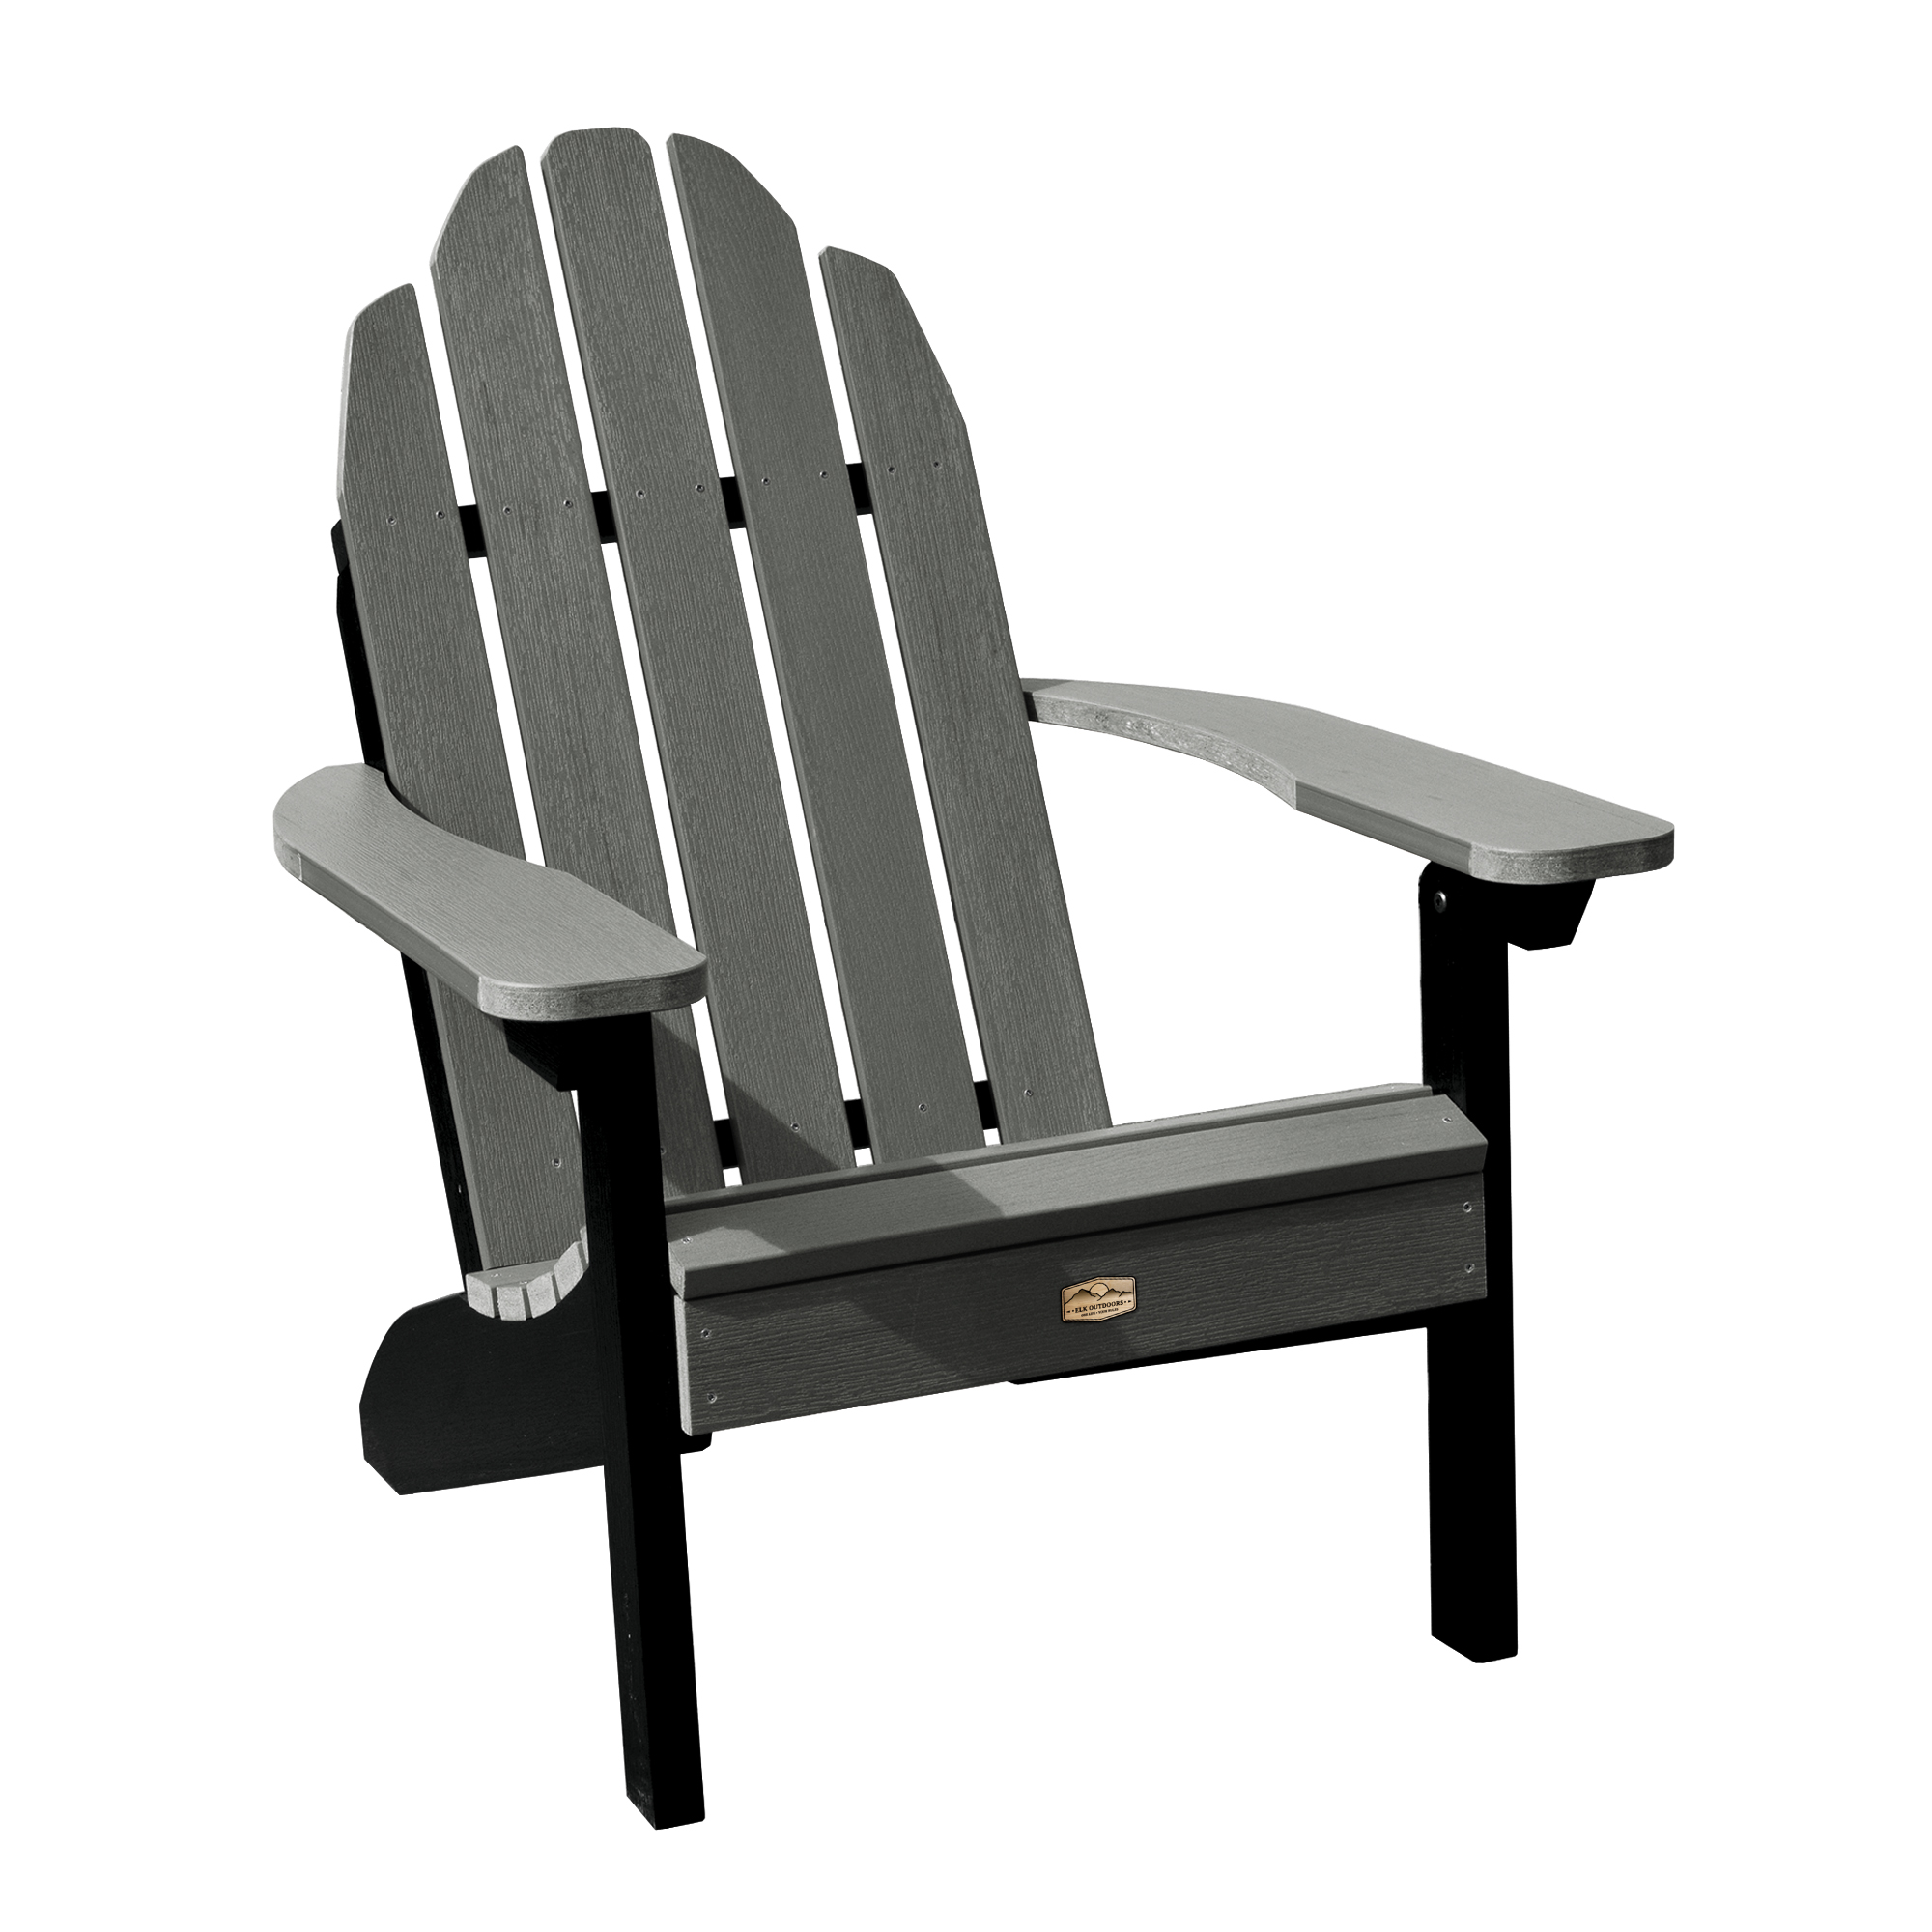 The Essential Adirondack Chair